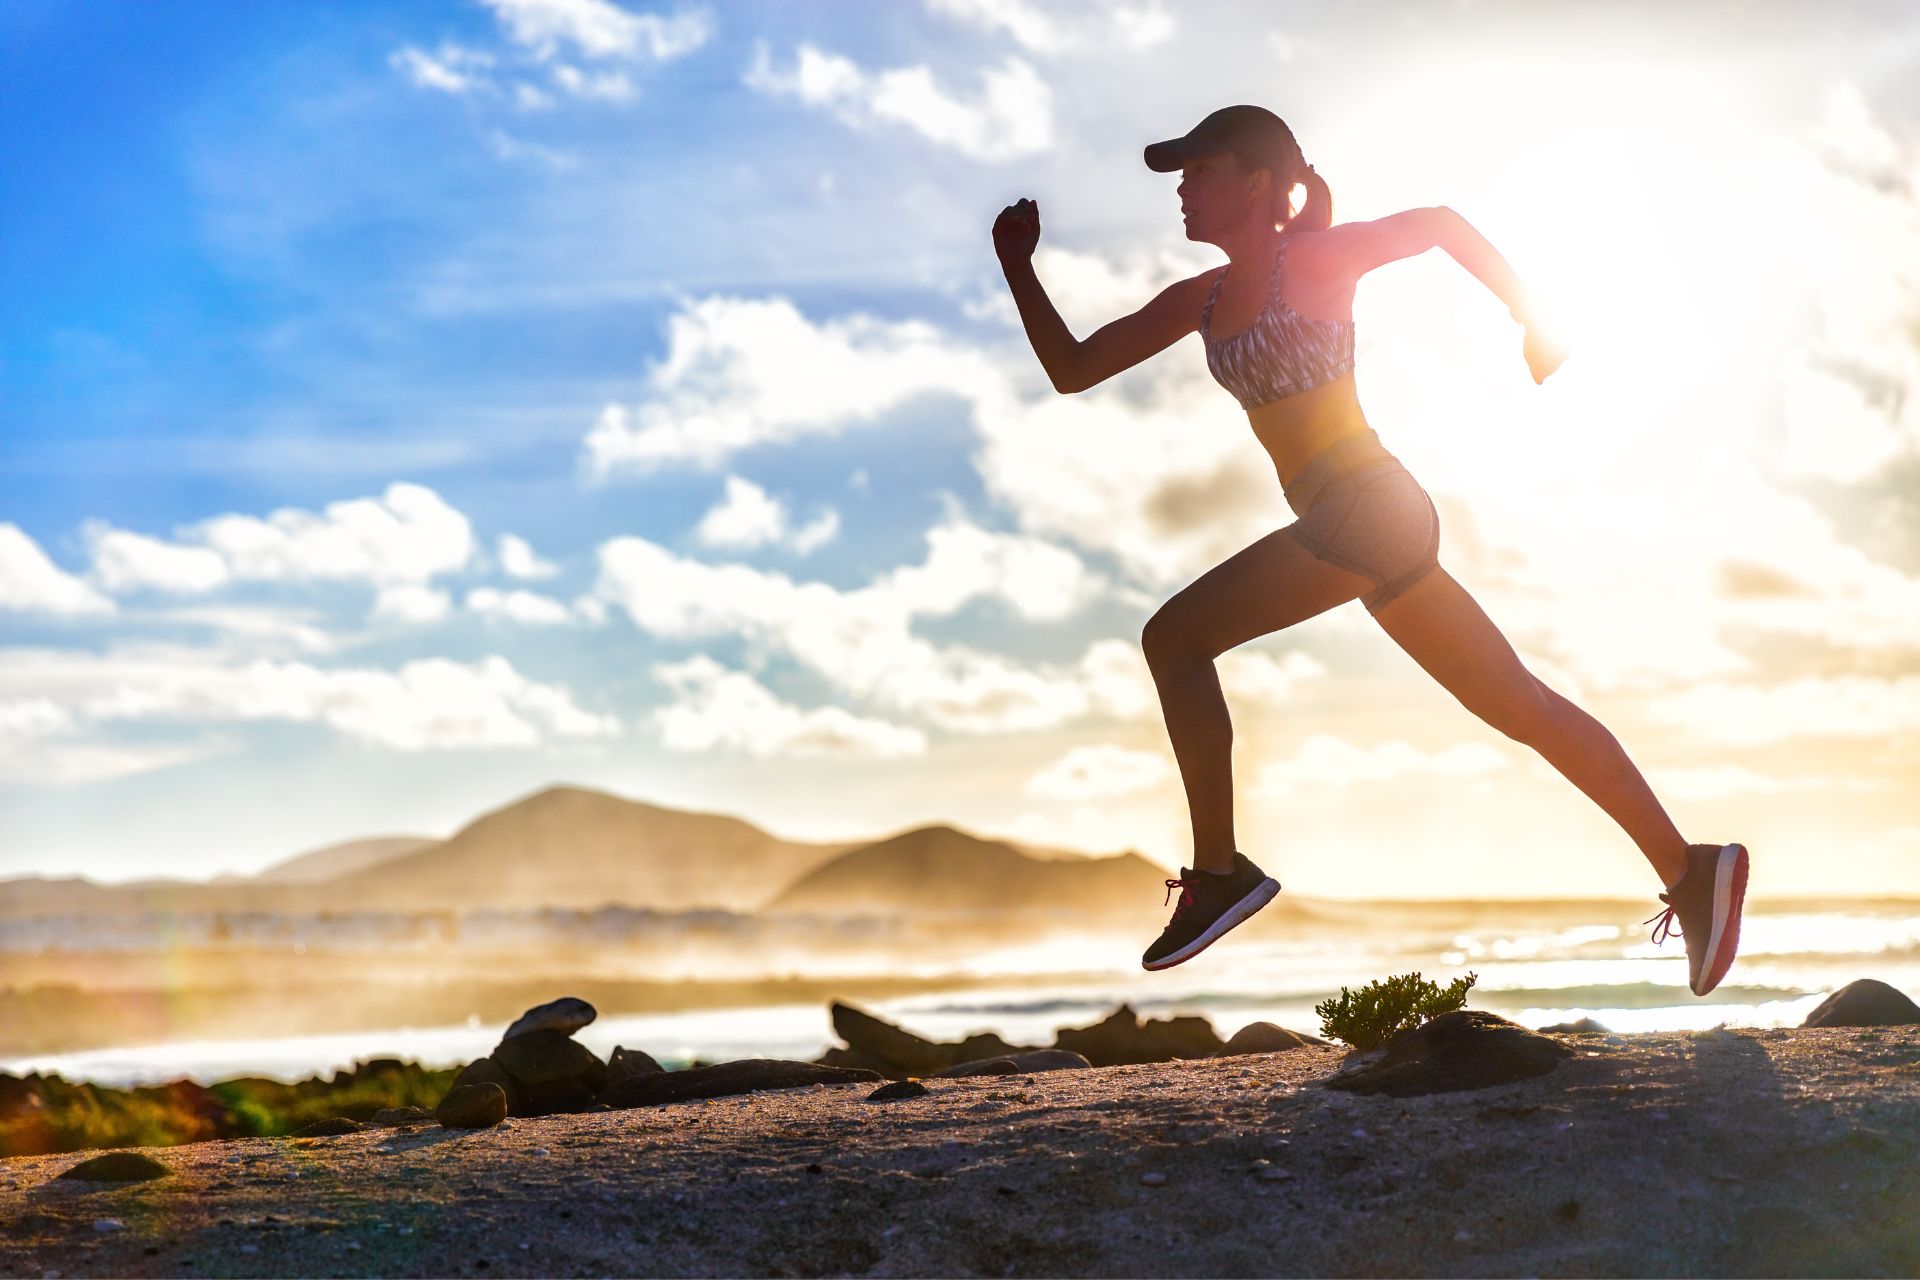 Tips on improving your running experience and some alternates to running